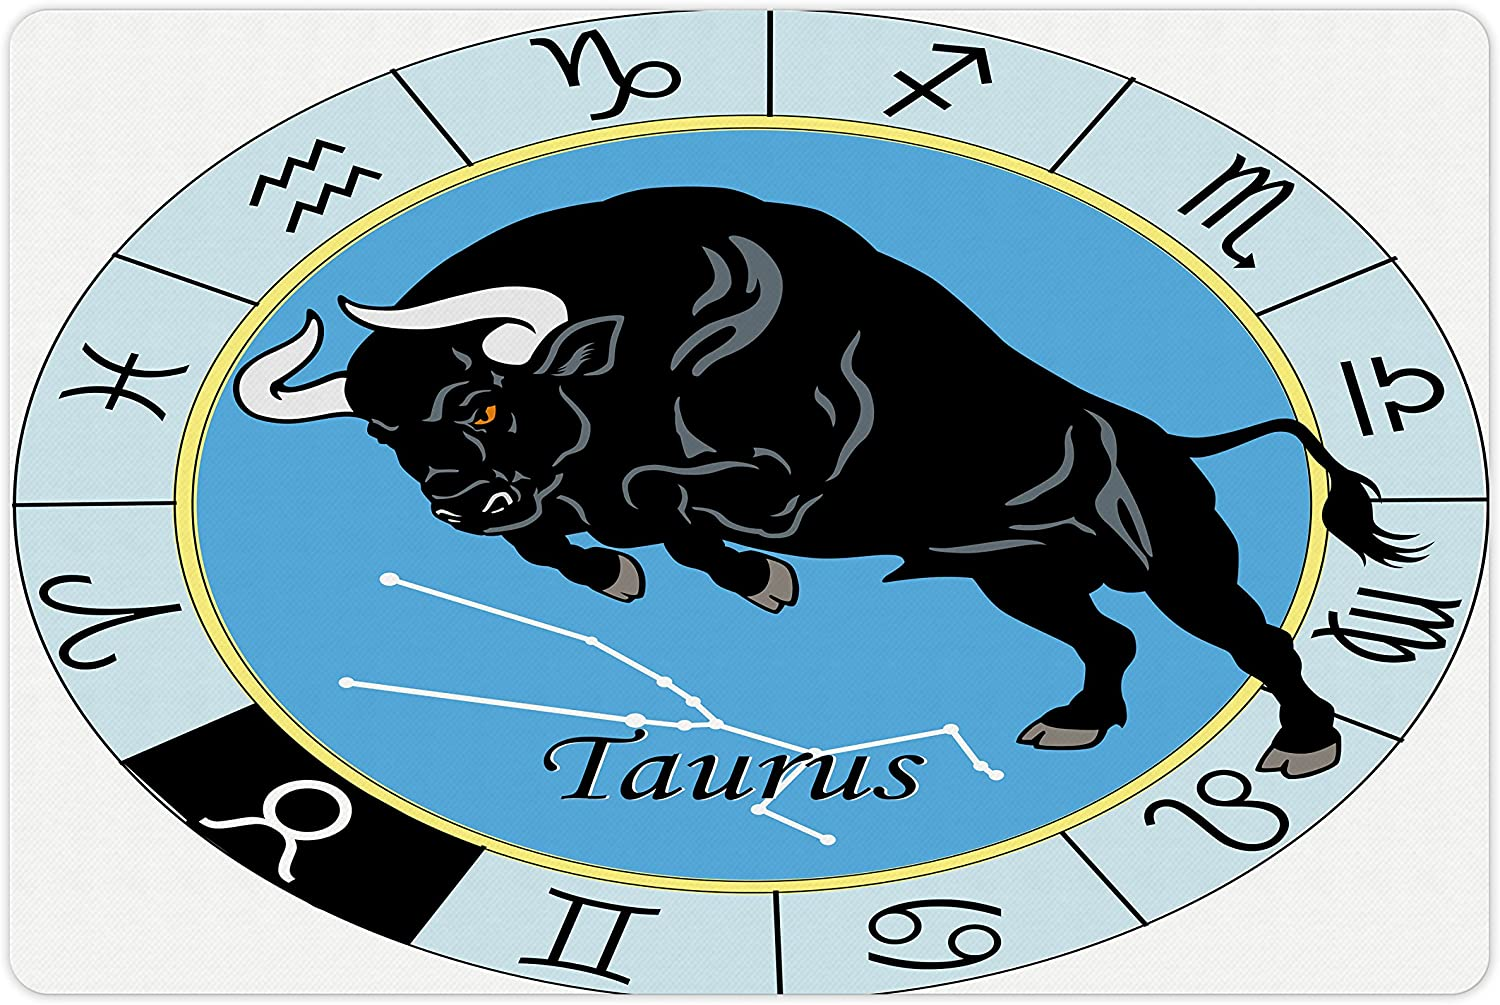 Lunarable Taurus Pet Mat for Food and Water, Zodiac Calendar with Bull Inside Celestial Creature Character Esoteric Print, Rectangle Non-Slip Rubber Mat for Dogs and Cats, Pale Blue Black